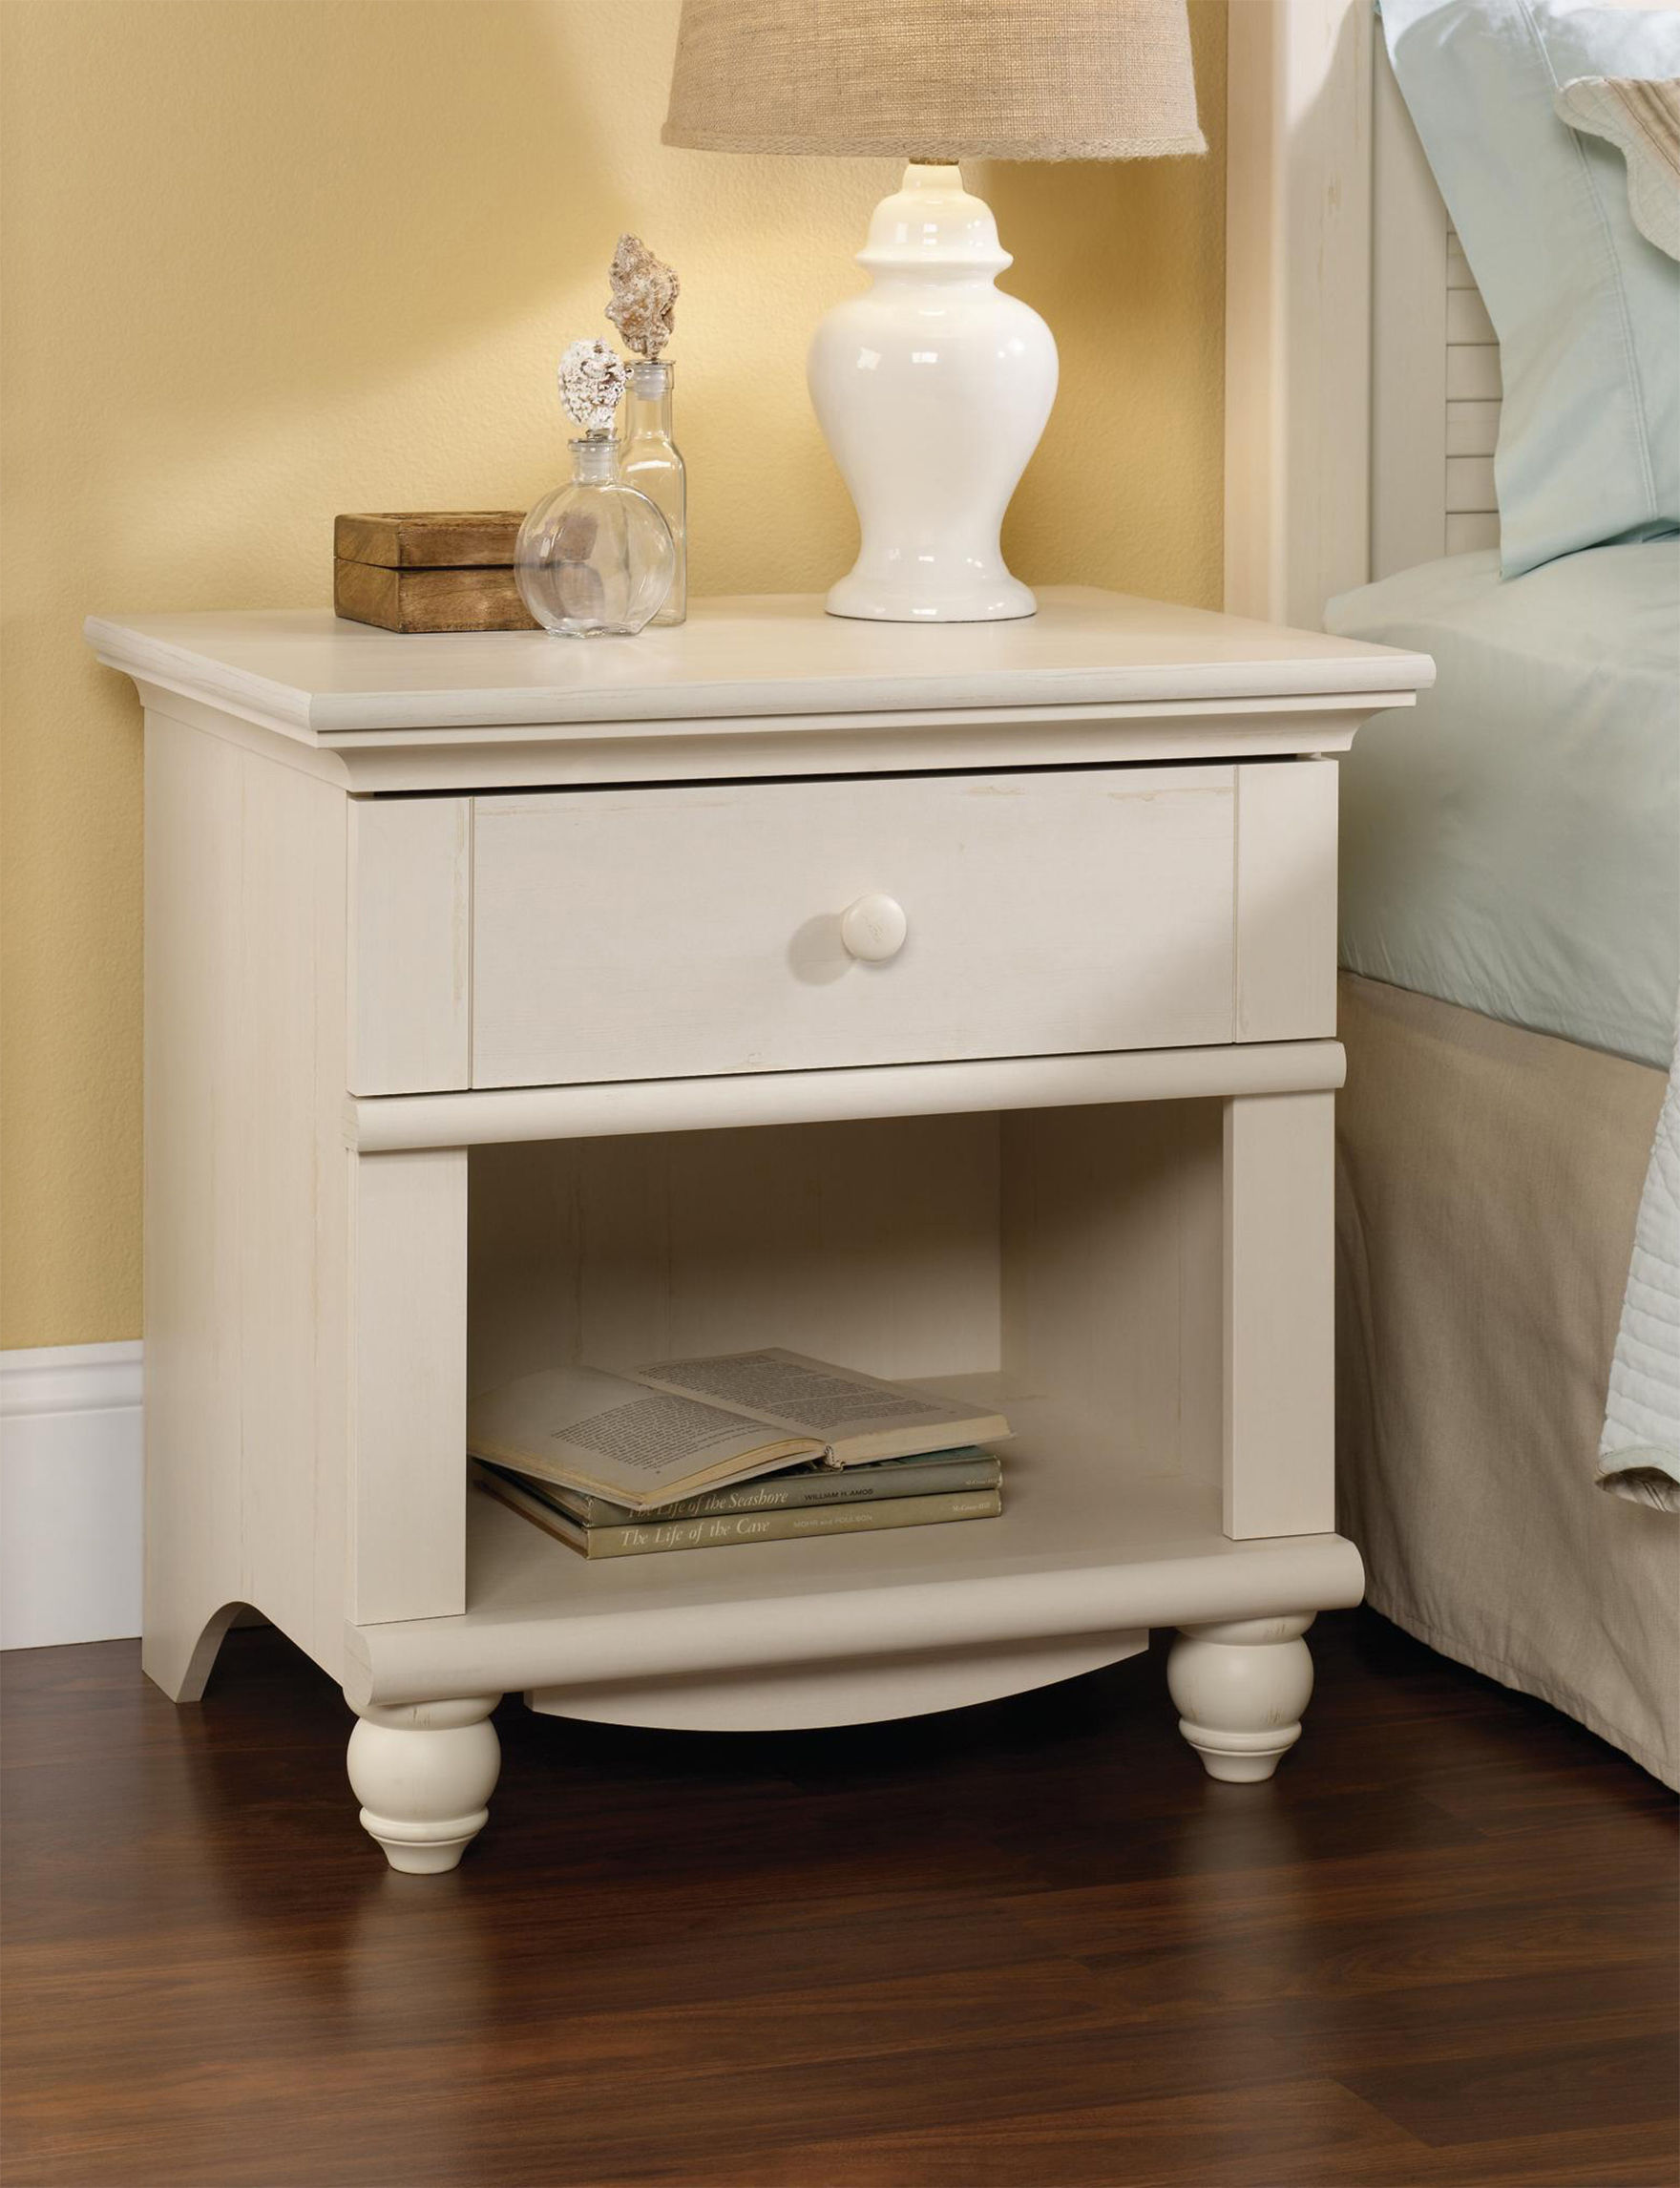 Sauder White Accent & End Tables Night Stands Bedroom Furniture Entryway Furniture Living Room Furniture